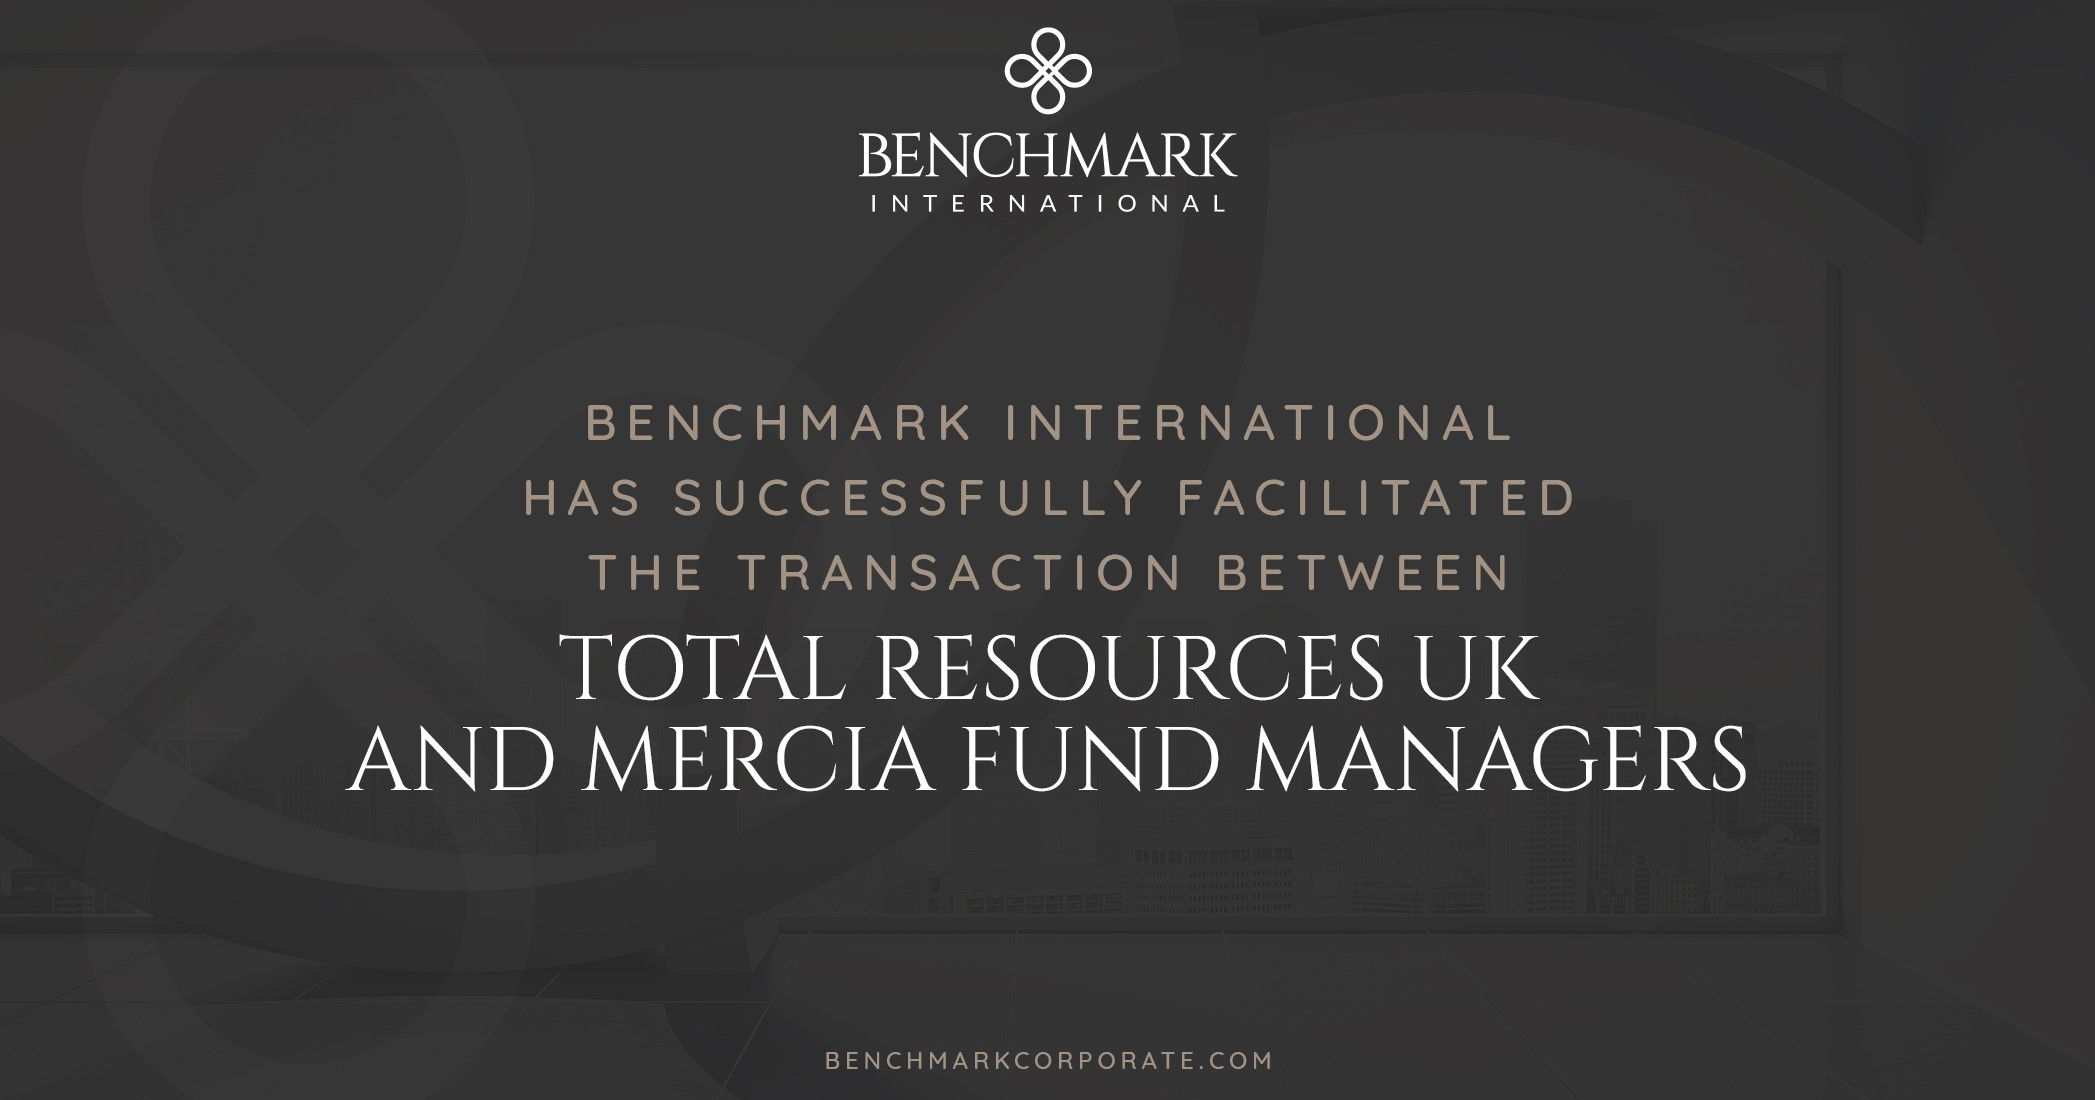 Benchmark International Advises on the Transaction Between Total Resources UK and Mercia Fund Managers